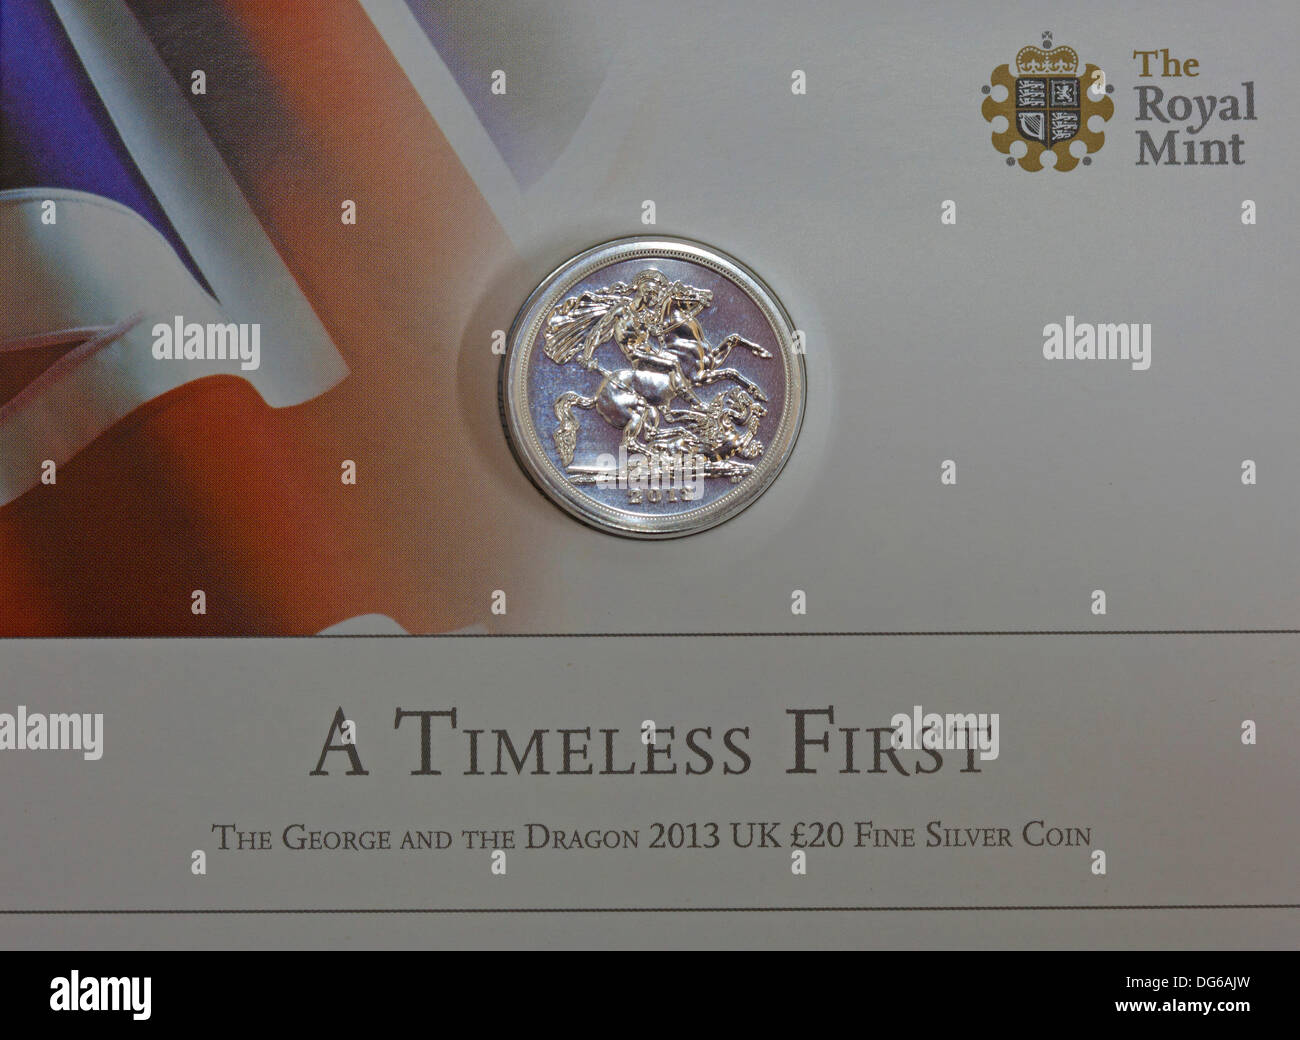 UK. 15th Oct. 2013, the Royal Mint releases United Kingdom's first ever £20 coin to those who had it on special Stock Photo